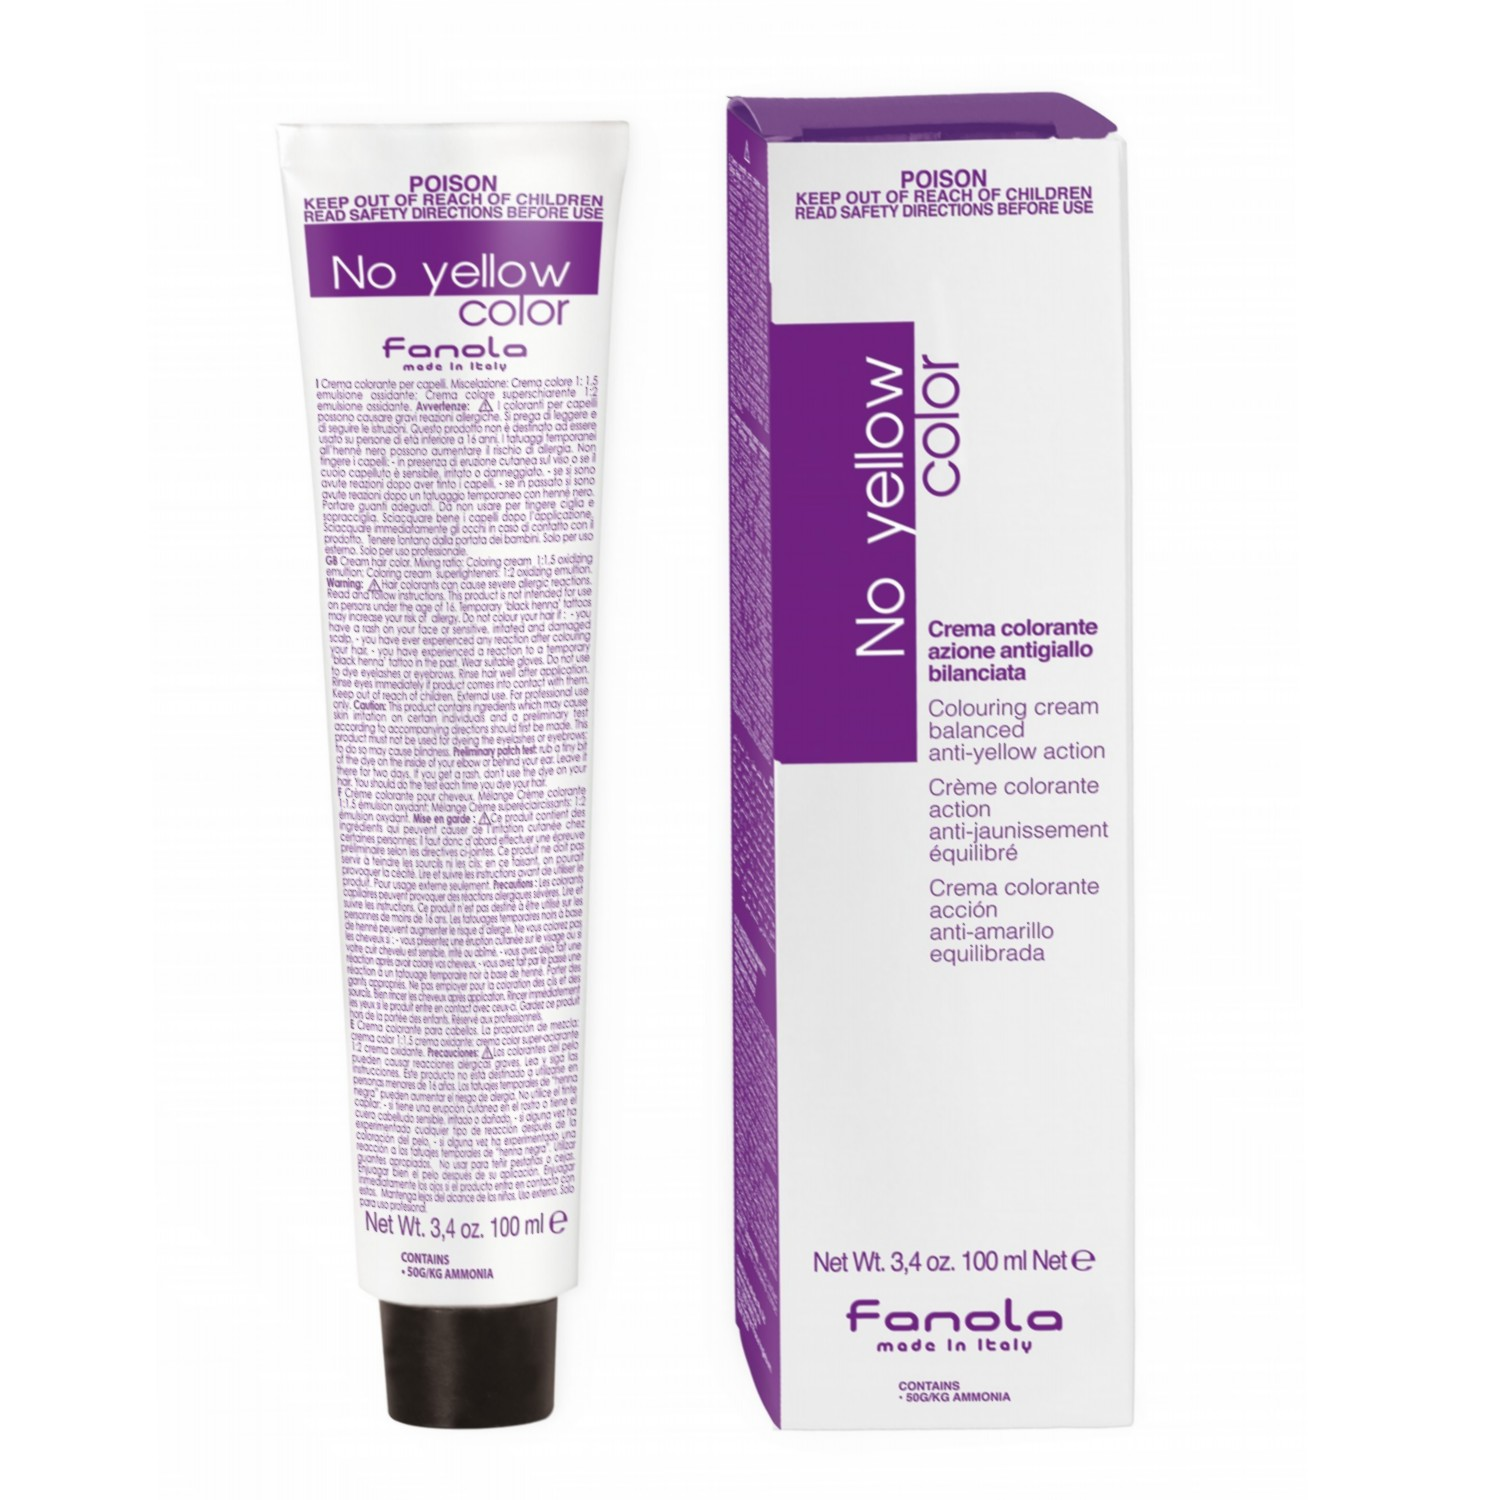 Fanola No yellow color ICE BLOND 100 ml